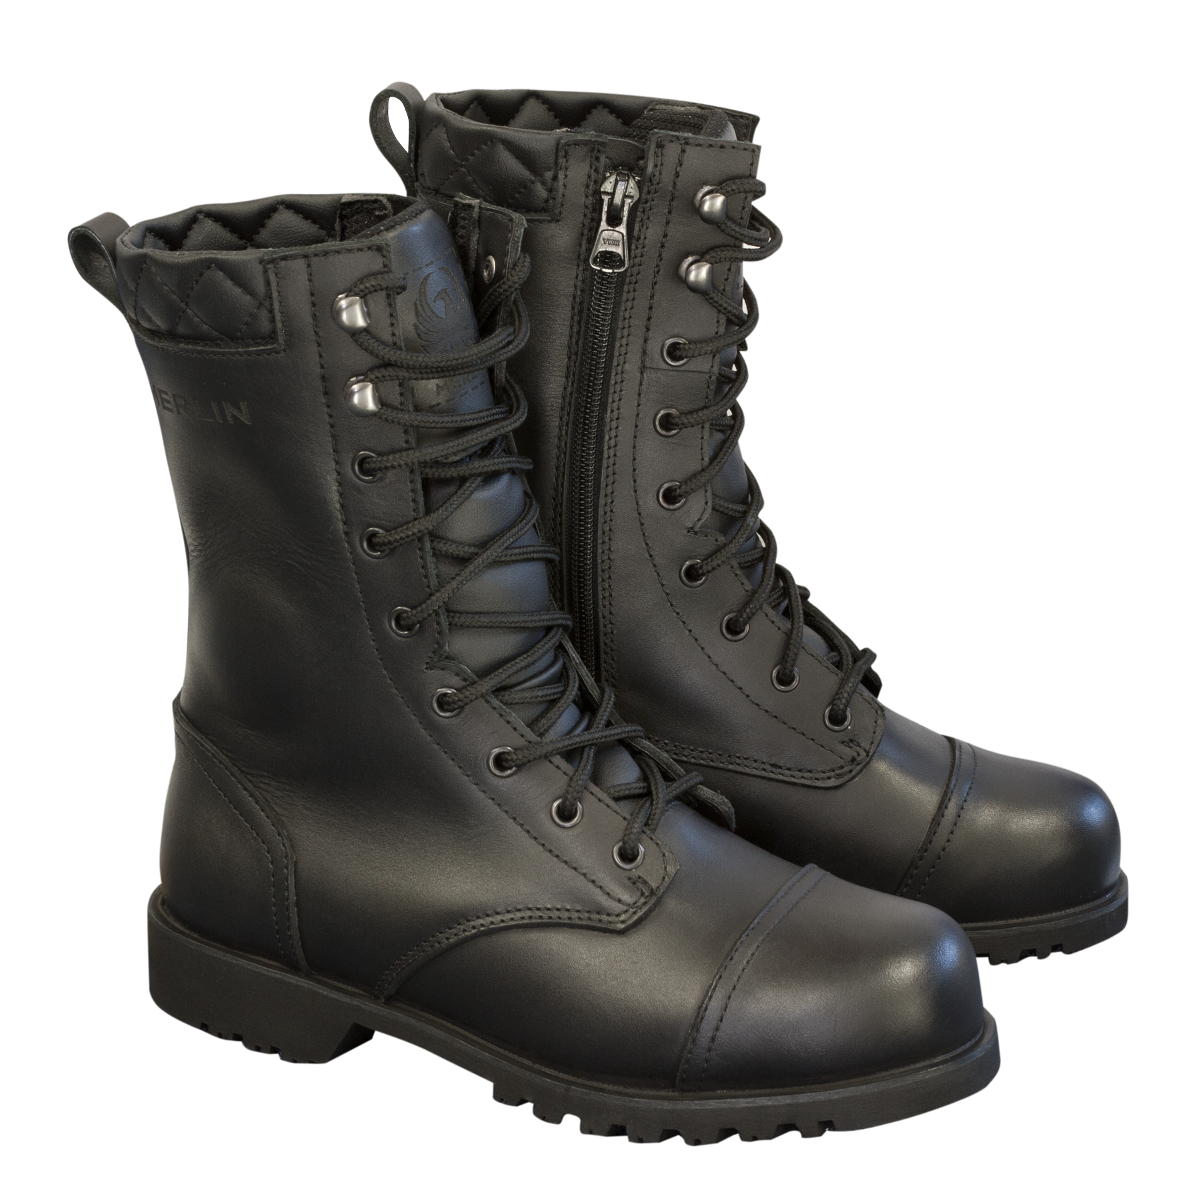 Combat boots png. Merlin g ladies waterproof